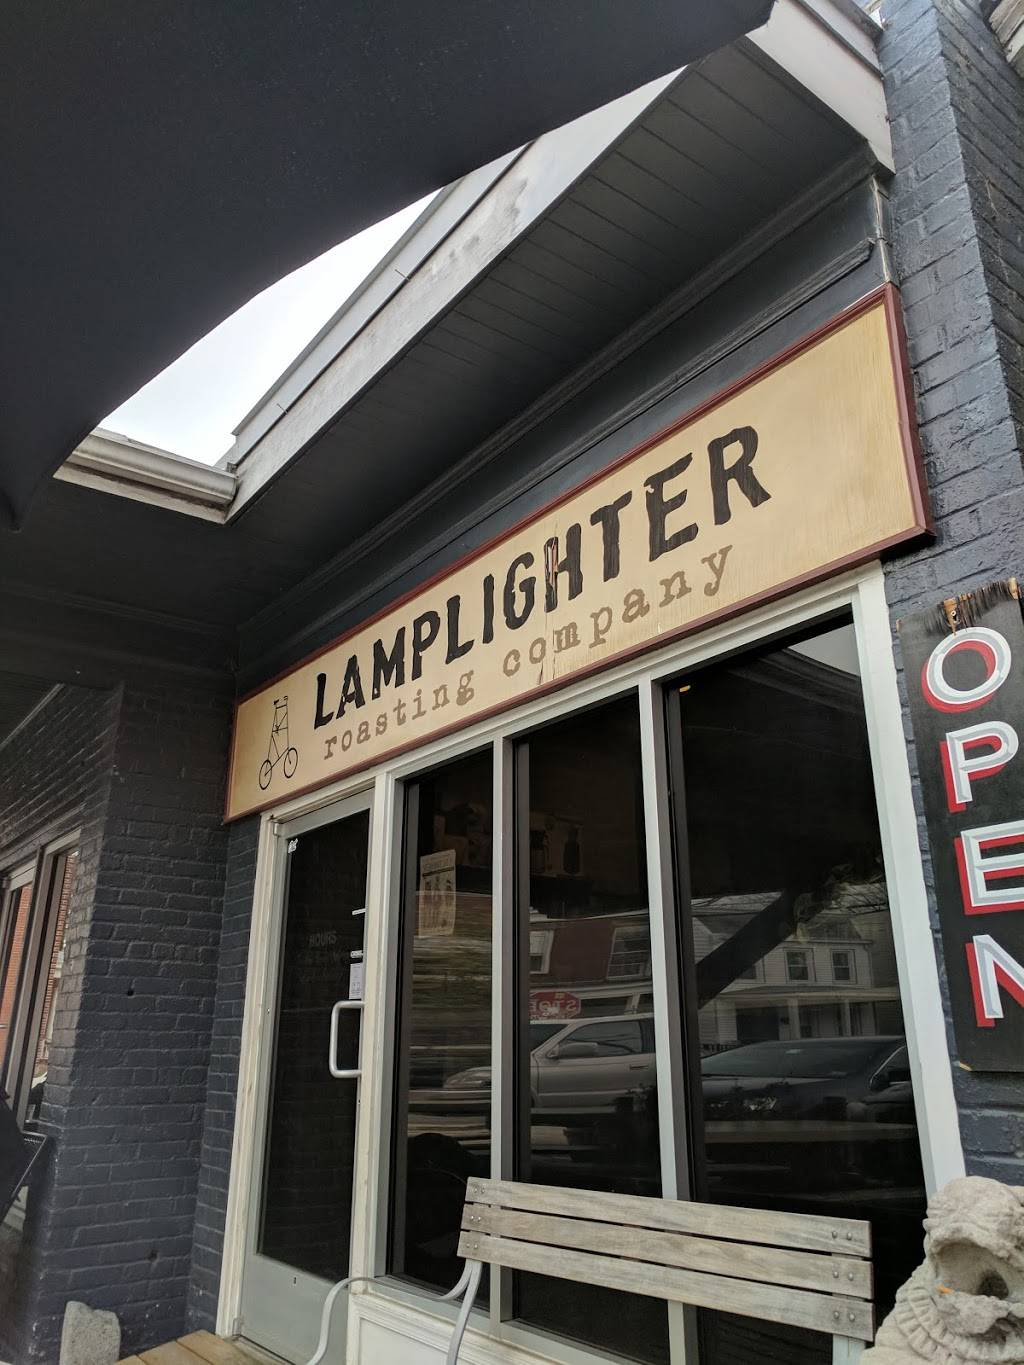 Lamplighter Coffee Roasters Addison St. Cafe | cafe | 116 S Addison St, Richmond, VA 23220, USA | 8047282292 OR +1 804-728-2292